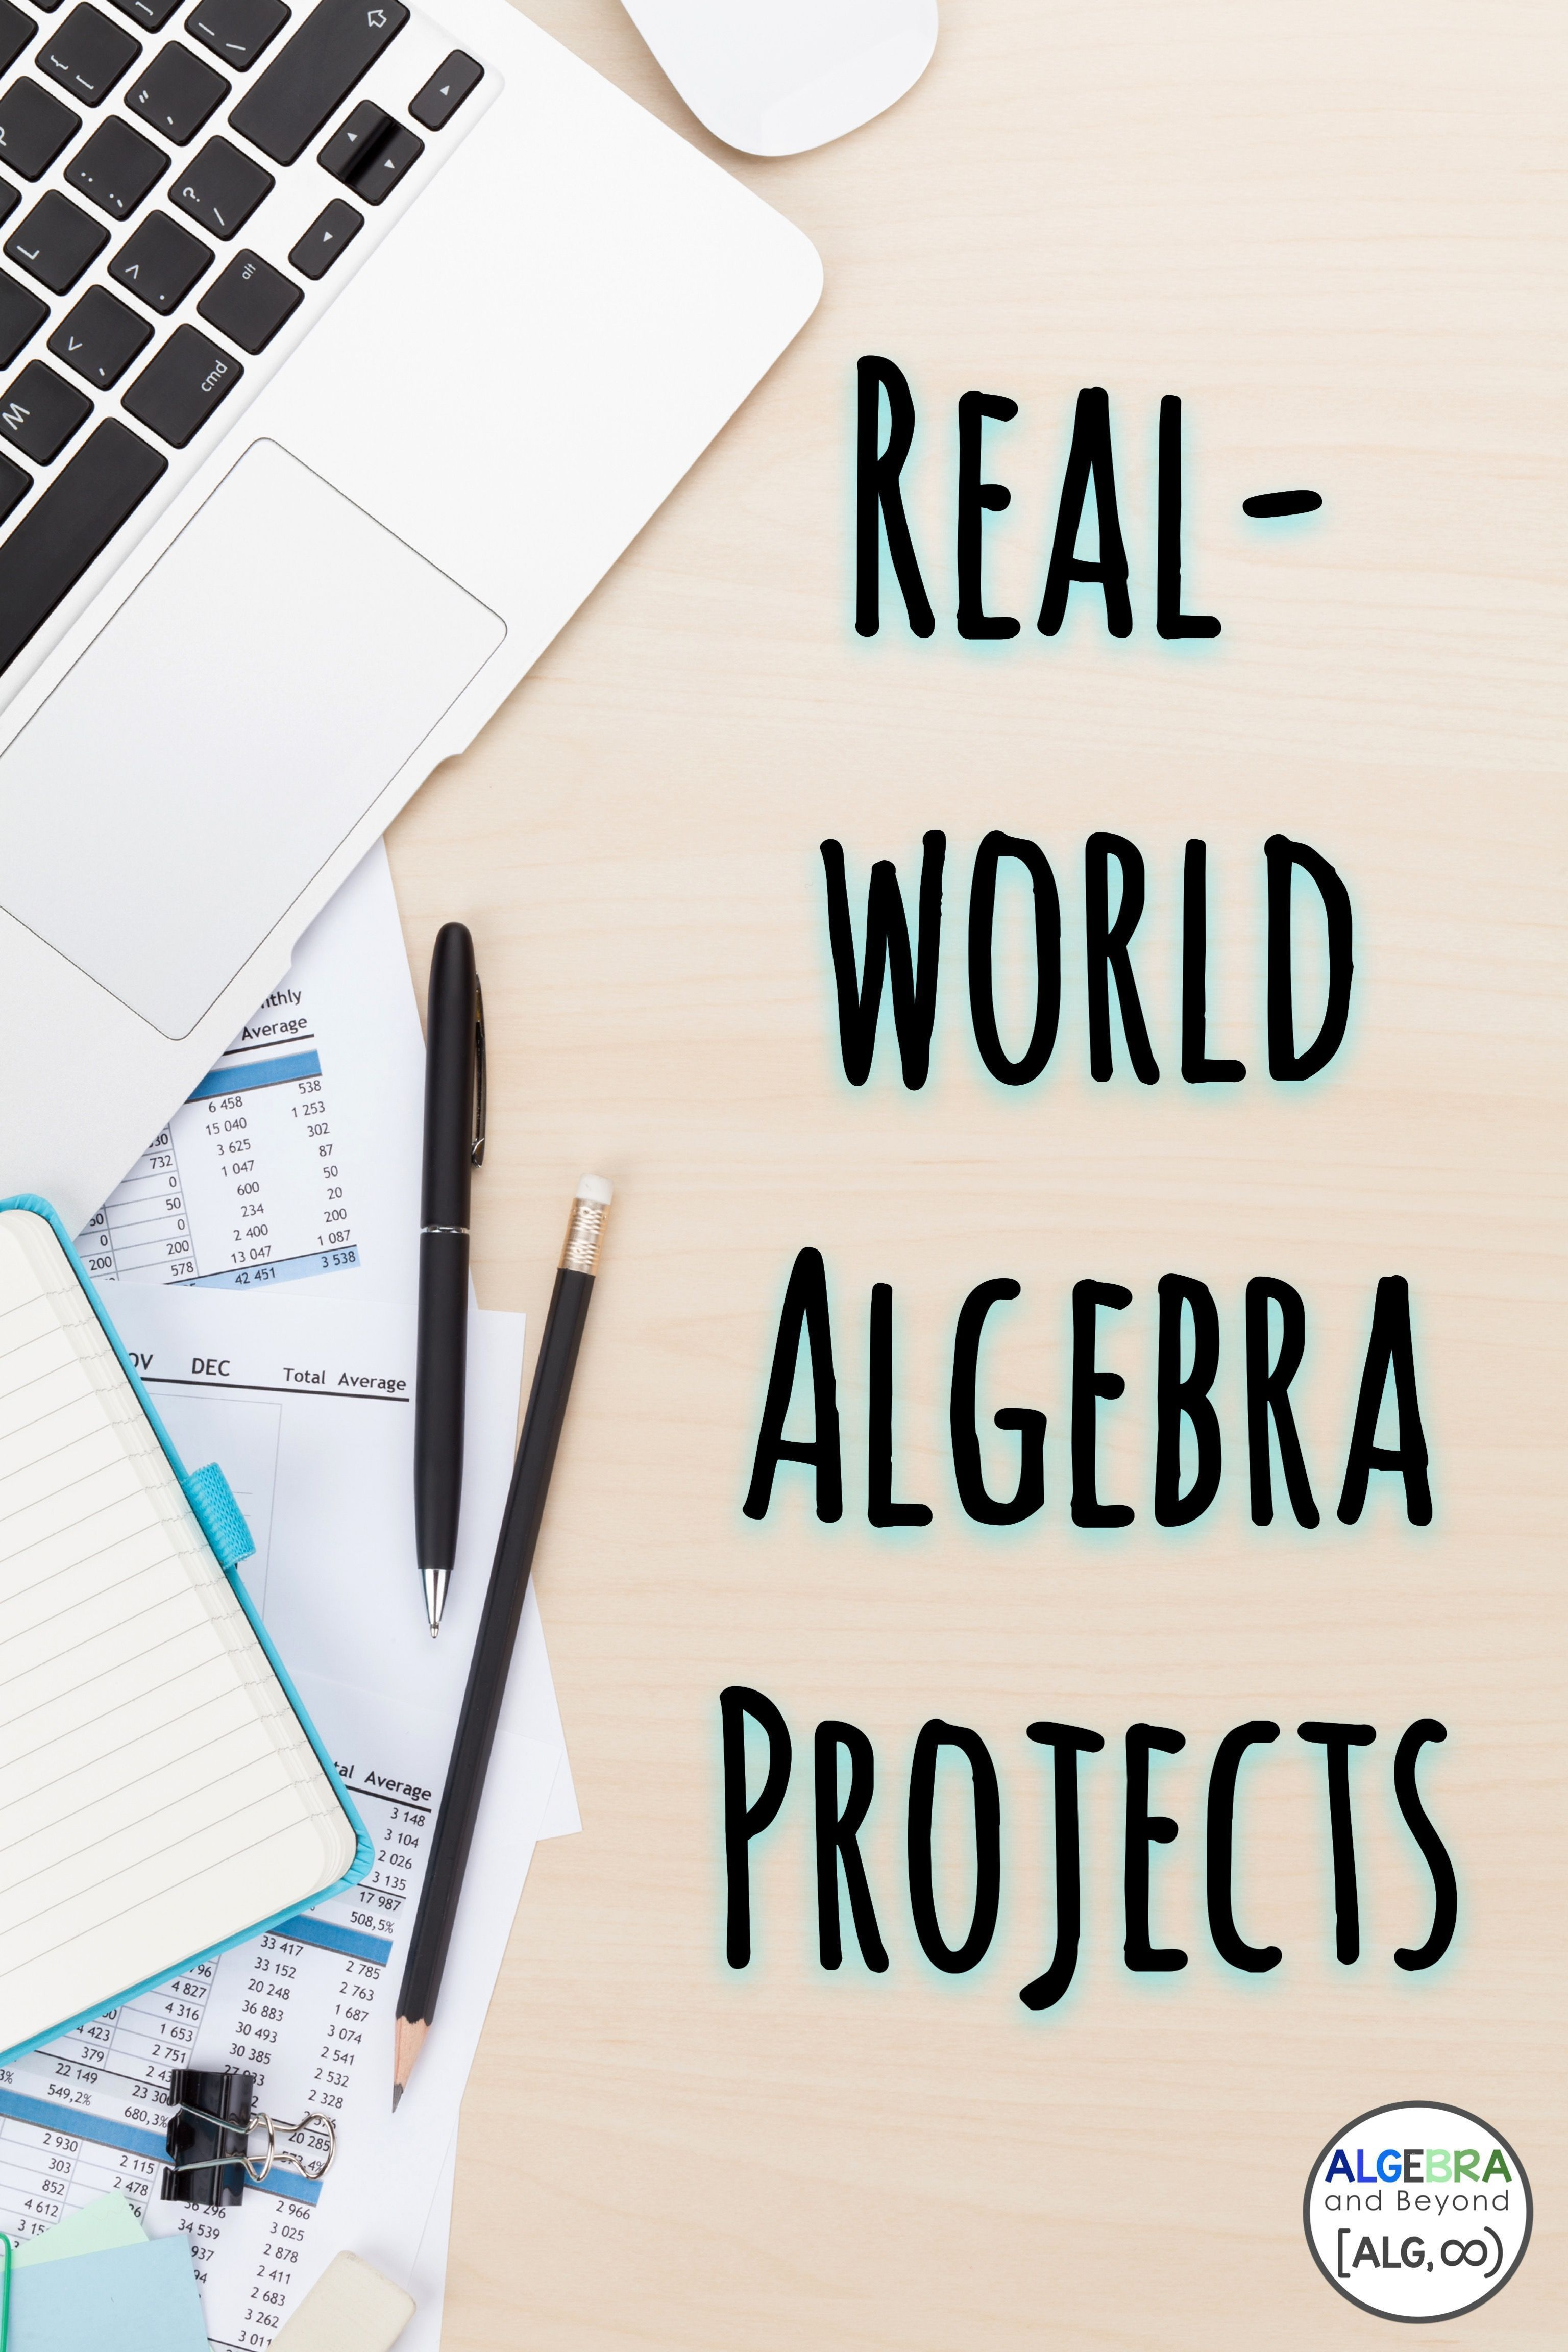 Real World Algebra Projects Are Awesome These Projects Connect Math With Real World Scenarios For Students To Explore Many Projects With Various Topics A Skola [ 4608 x 3072 Pixel ]